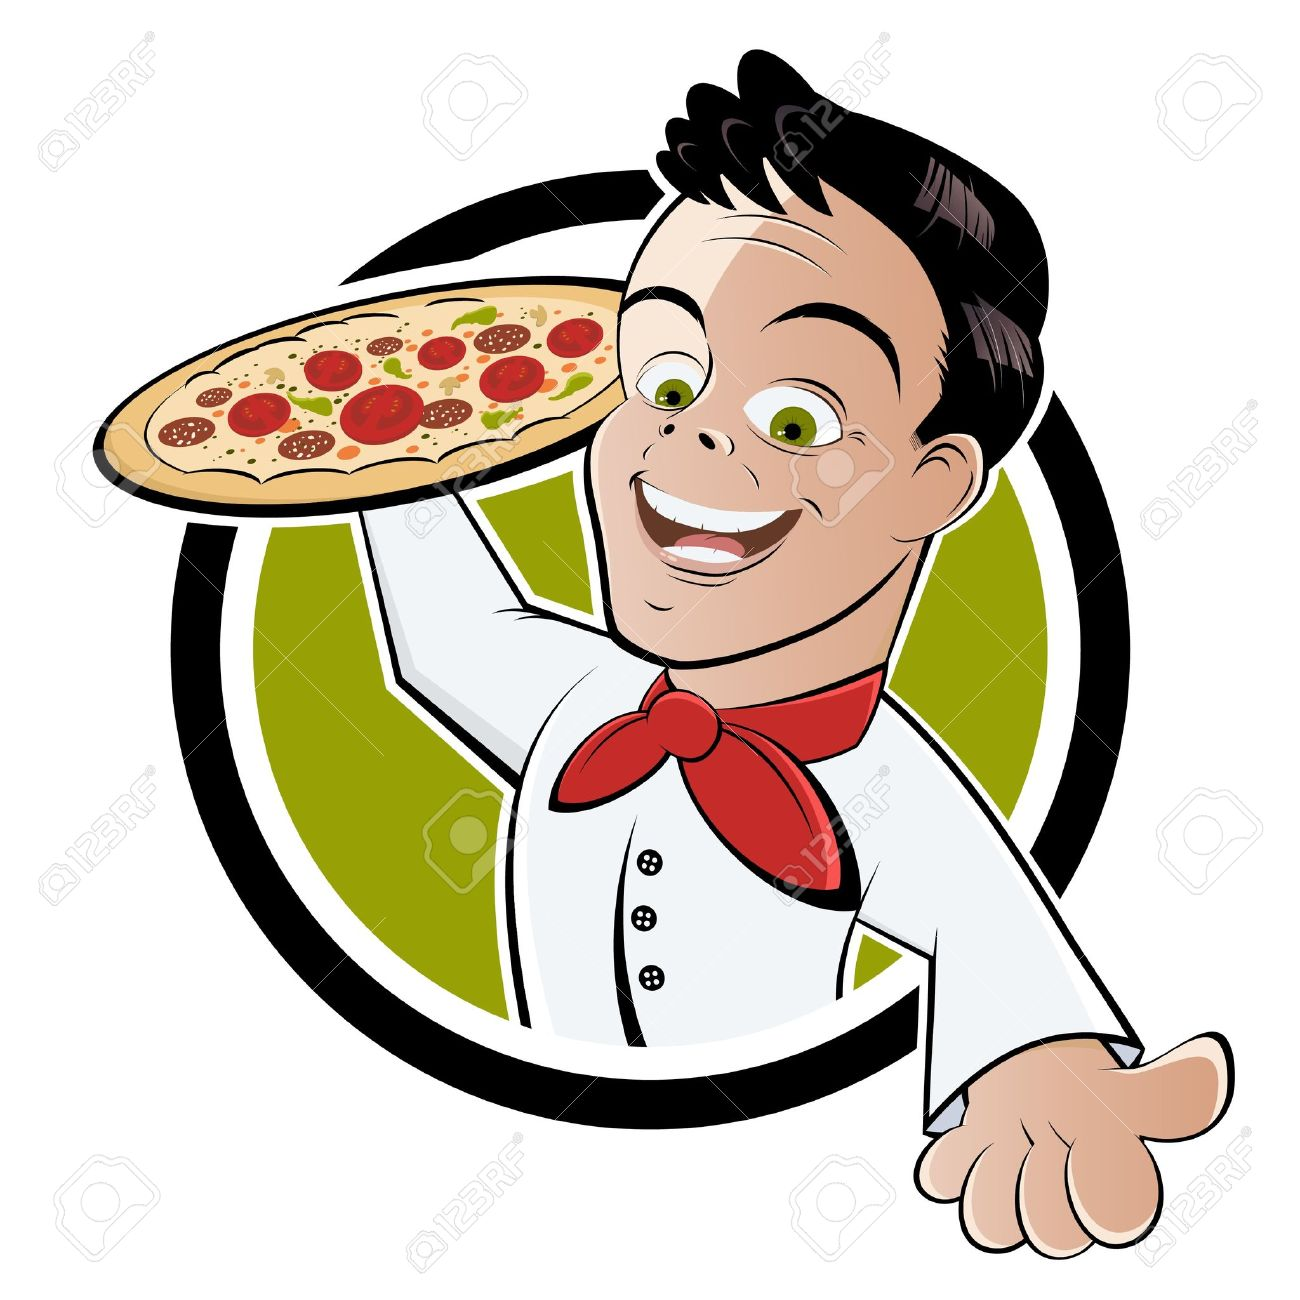 1300x1300 Pizza Clipart, Suggestions For Pizza Clipart, Download Pizza Clipart